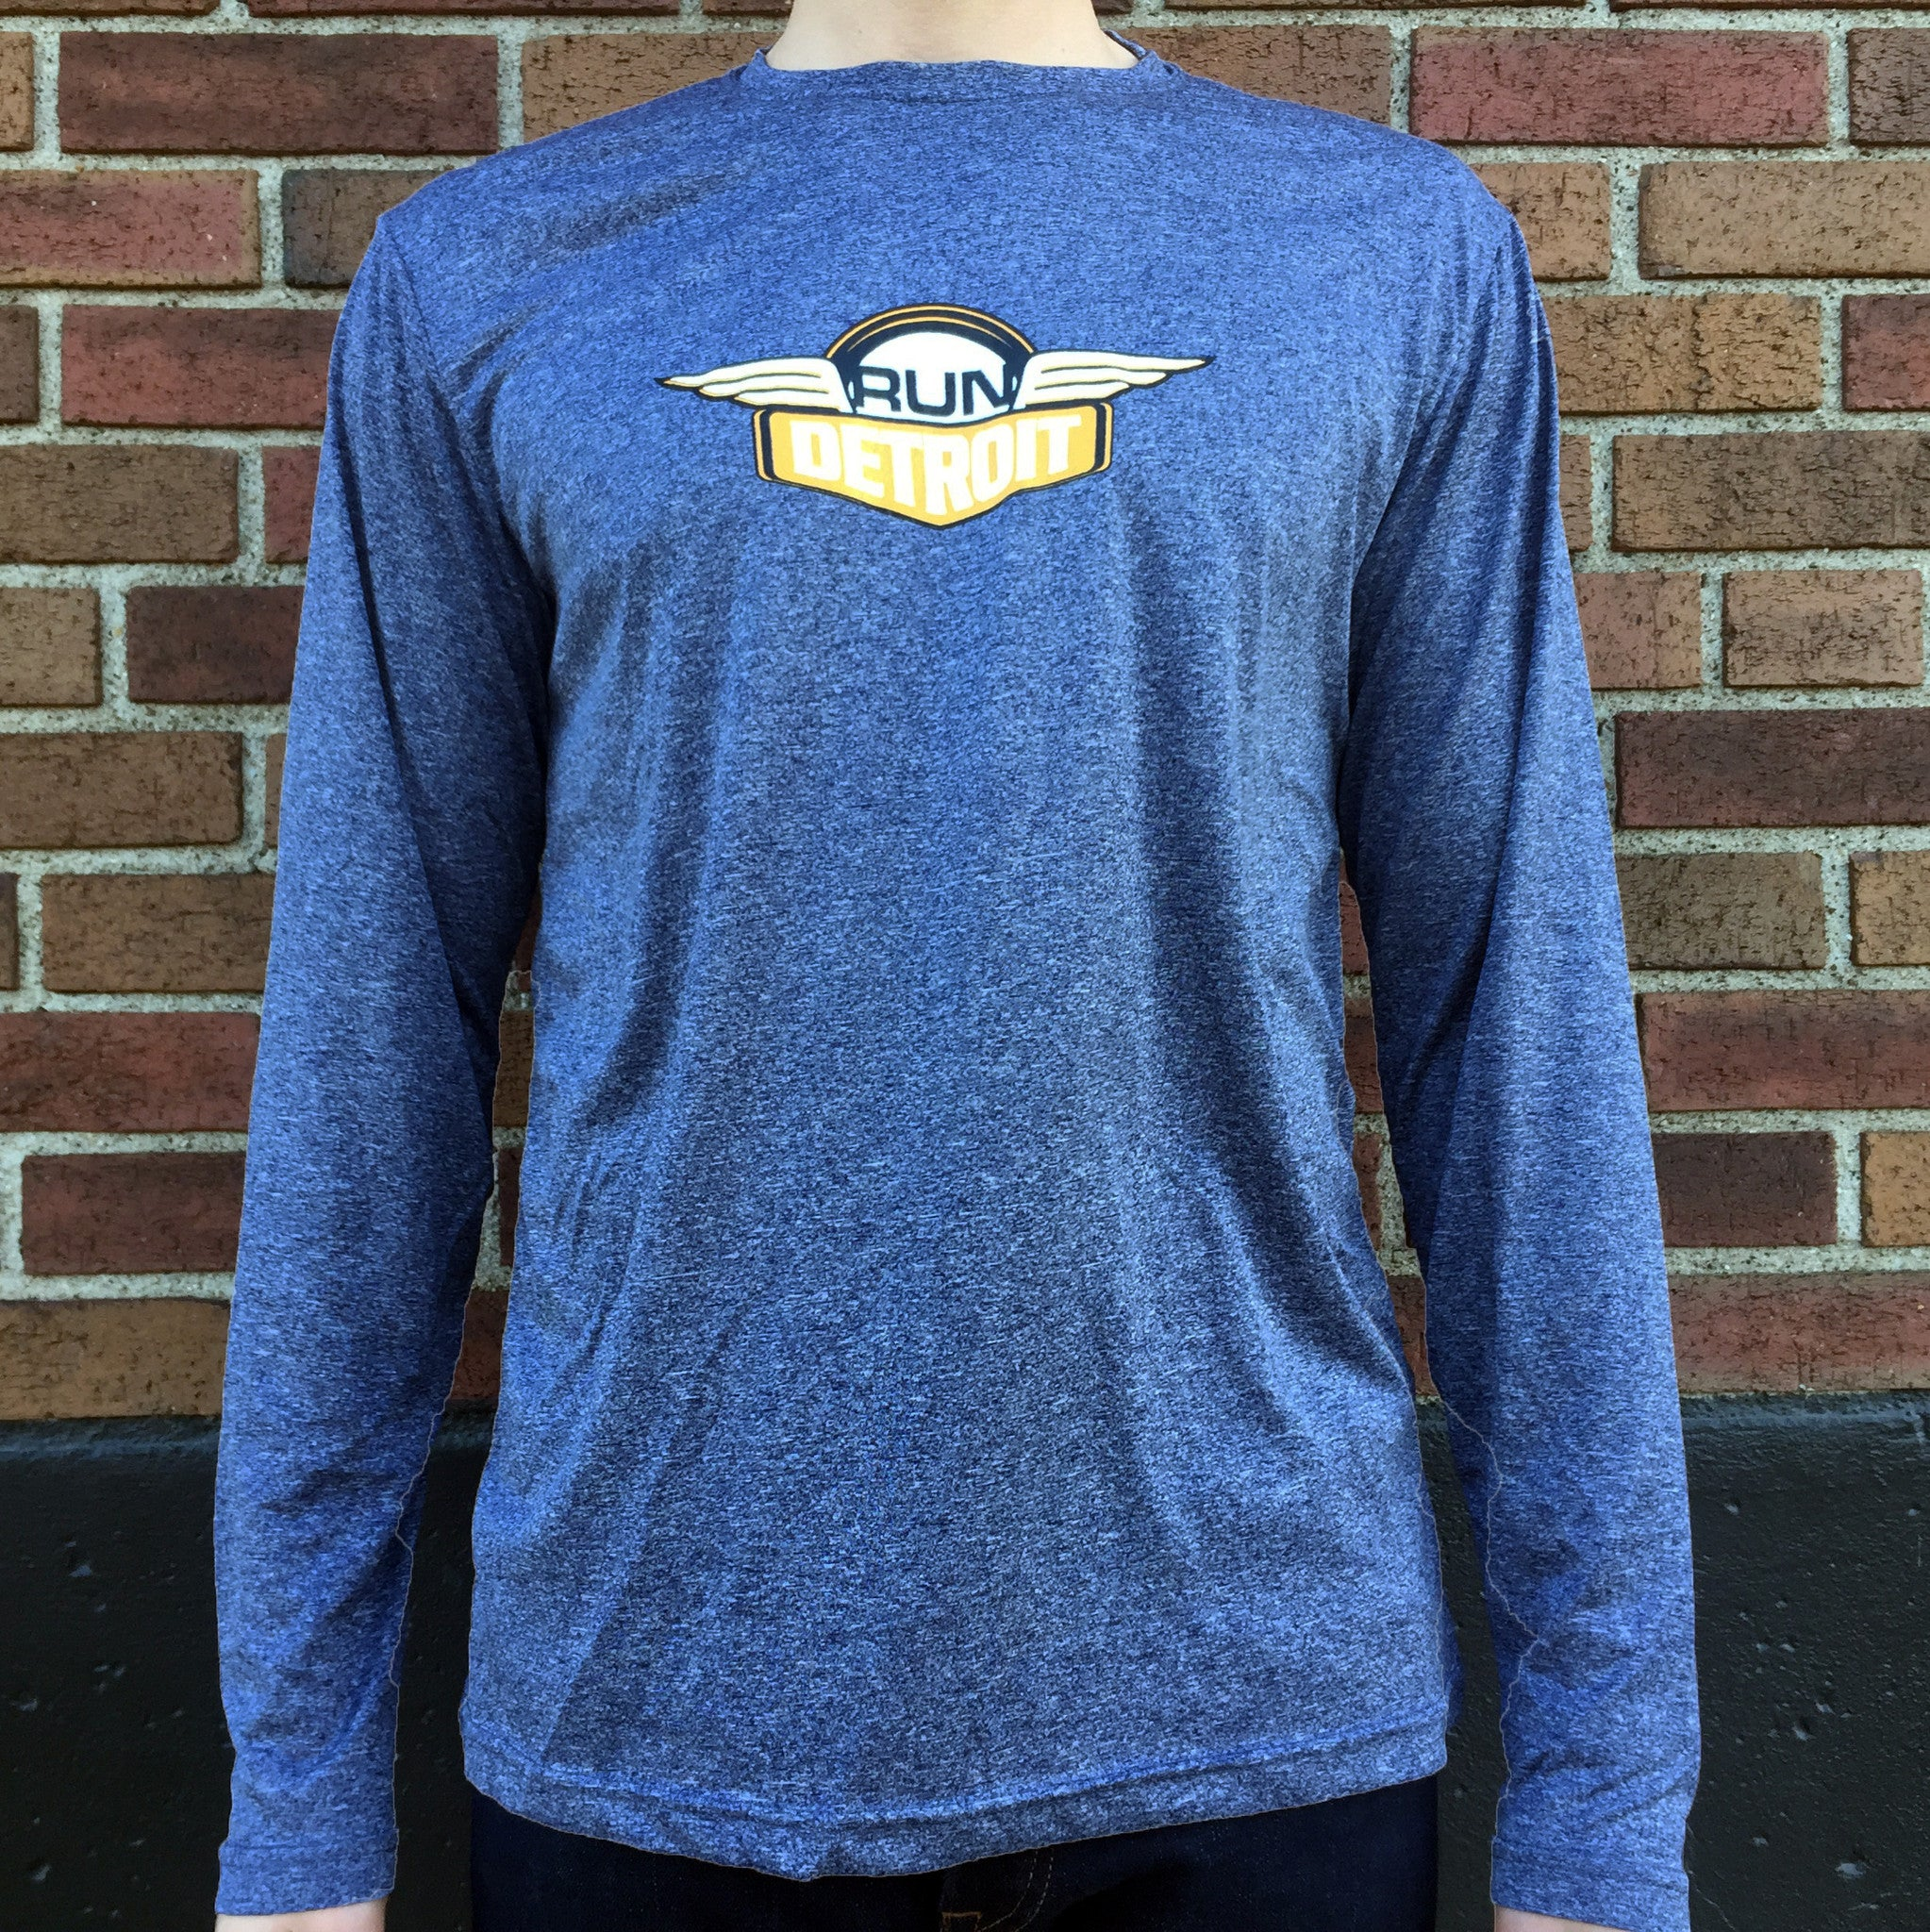 Heathered Navy Men's long sleeve technical wicking fabric shirt with RUNdetroit logo